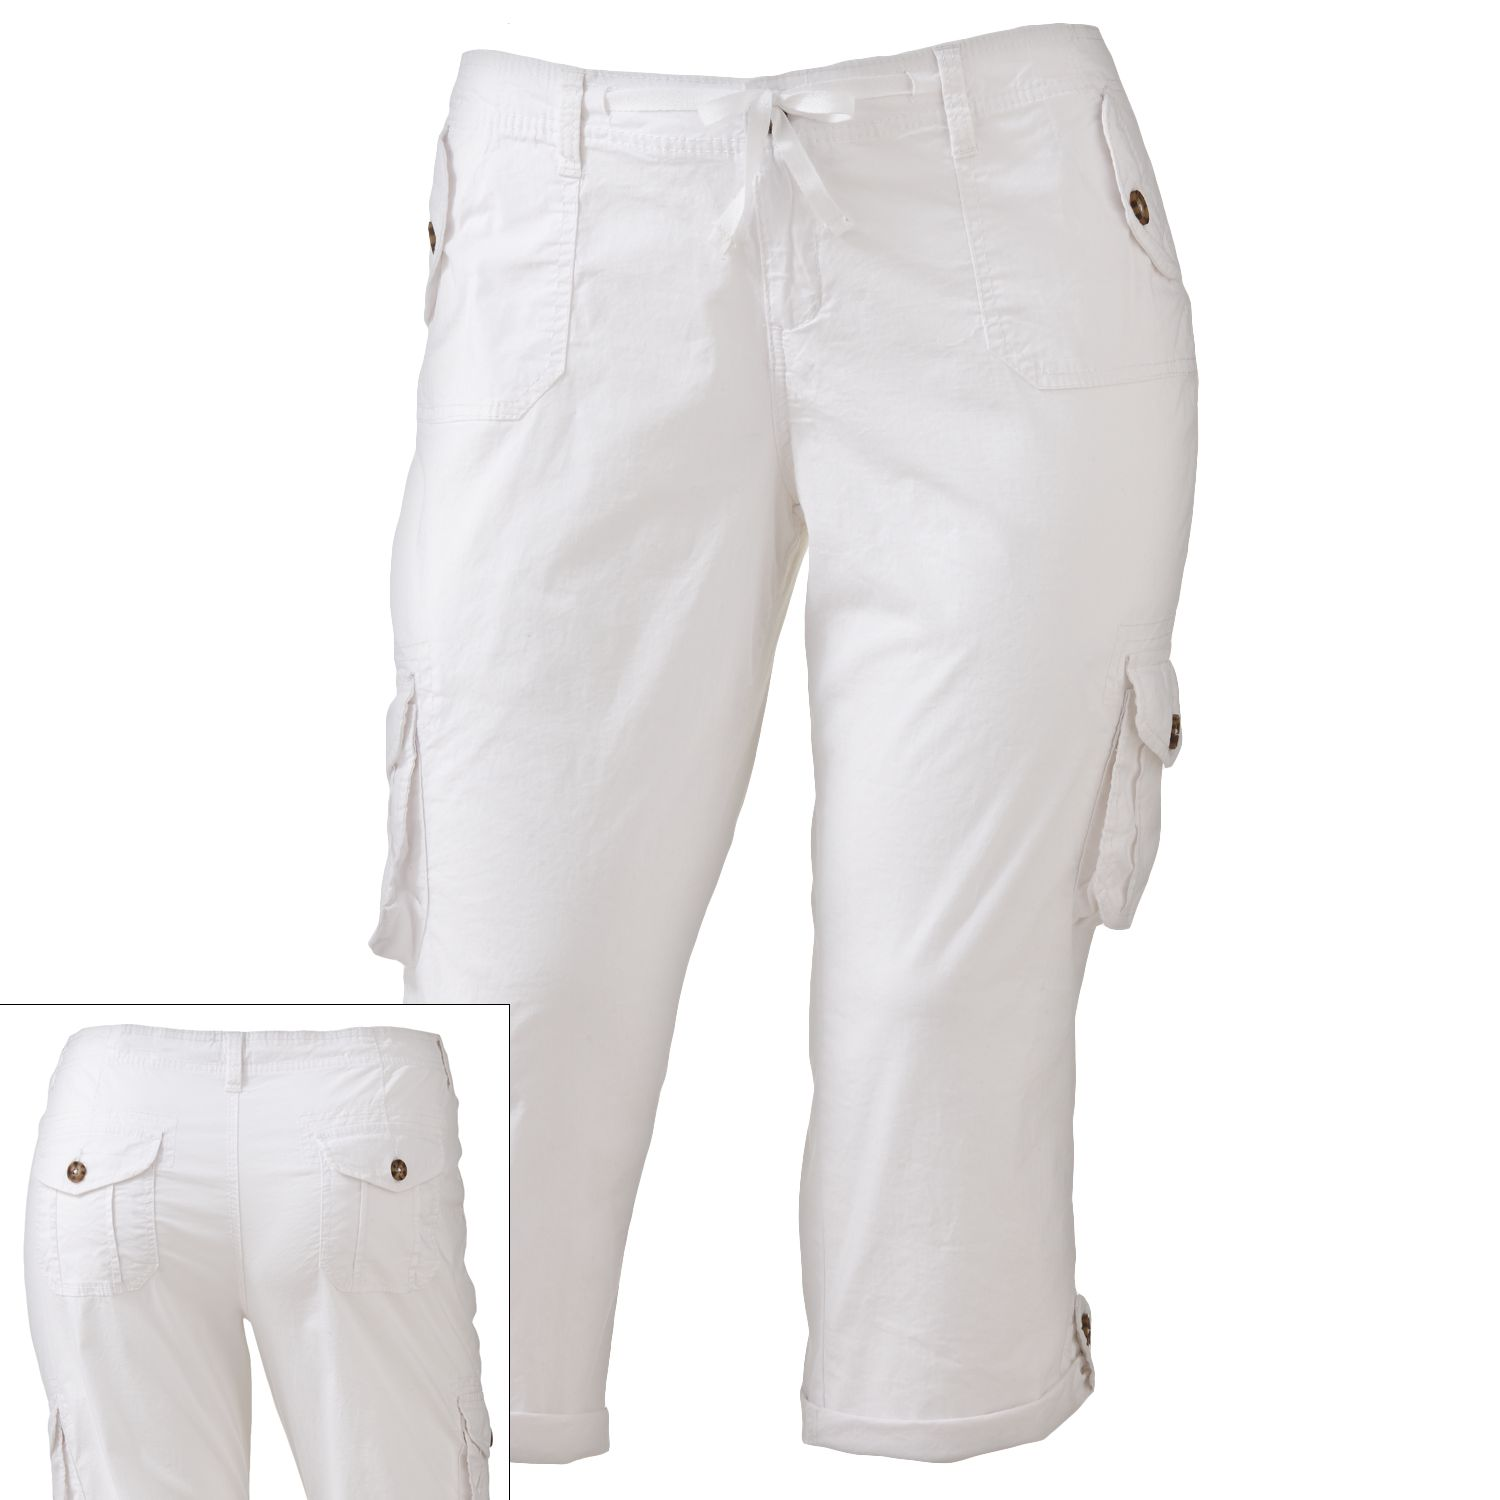 So Poplin Cargo Capris - Juniors' Plus - $12.00